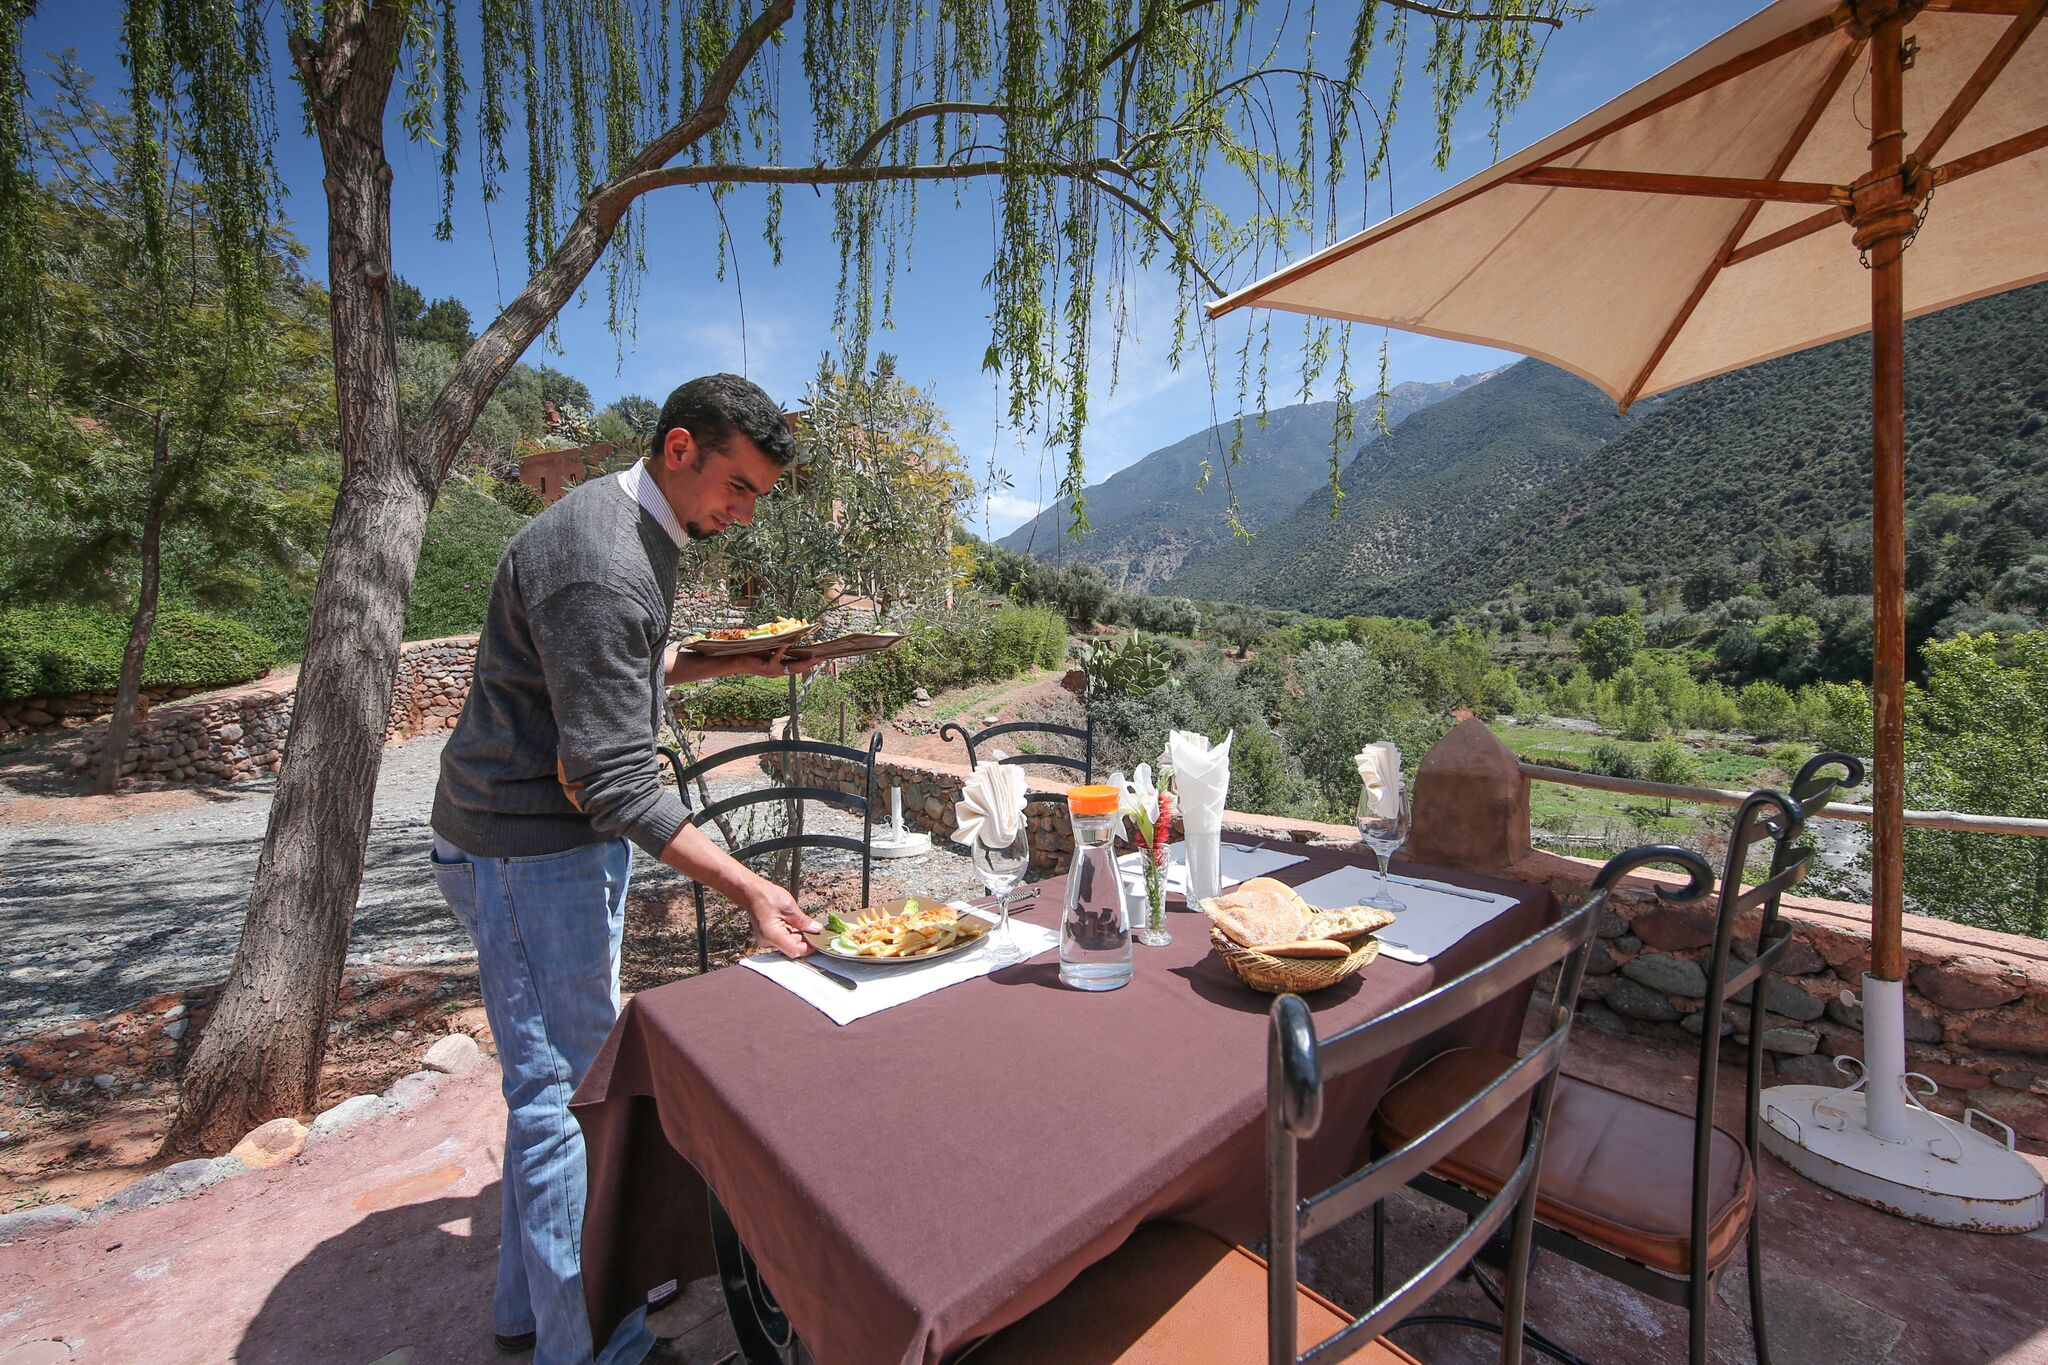 Outdoor dining at the kasbah